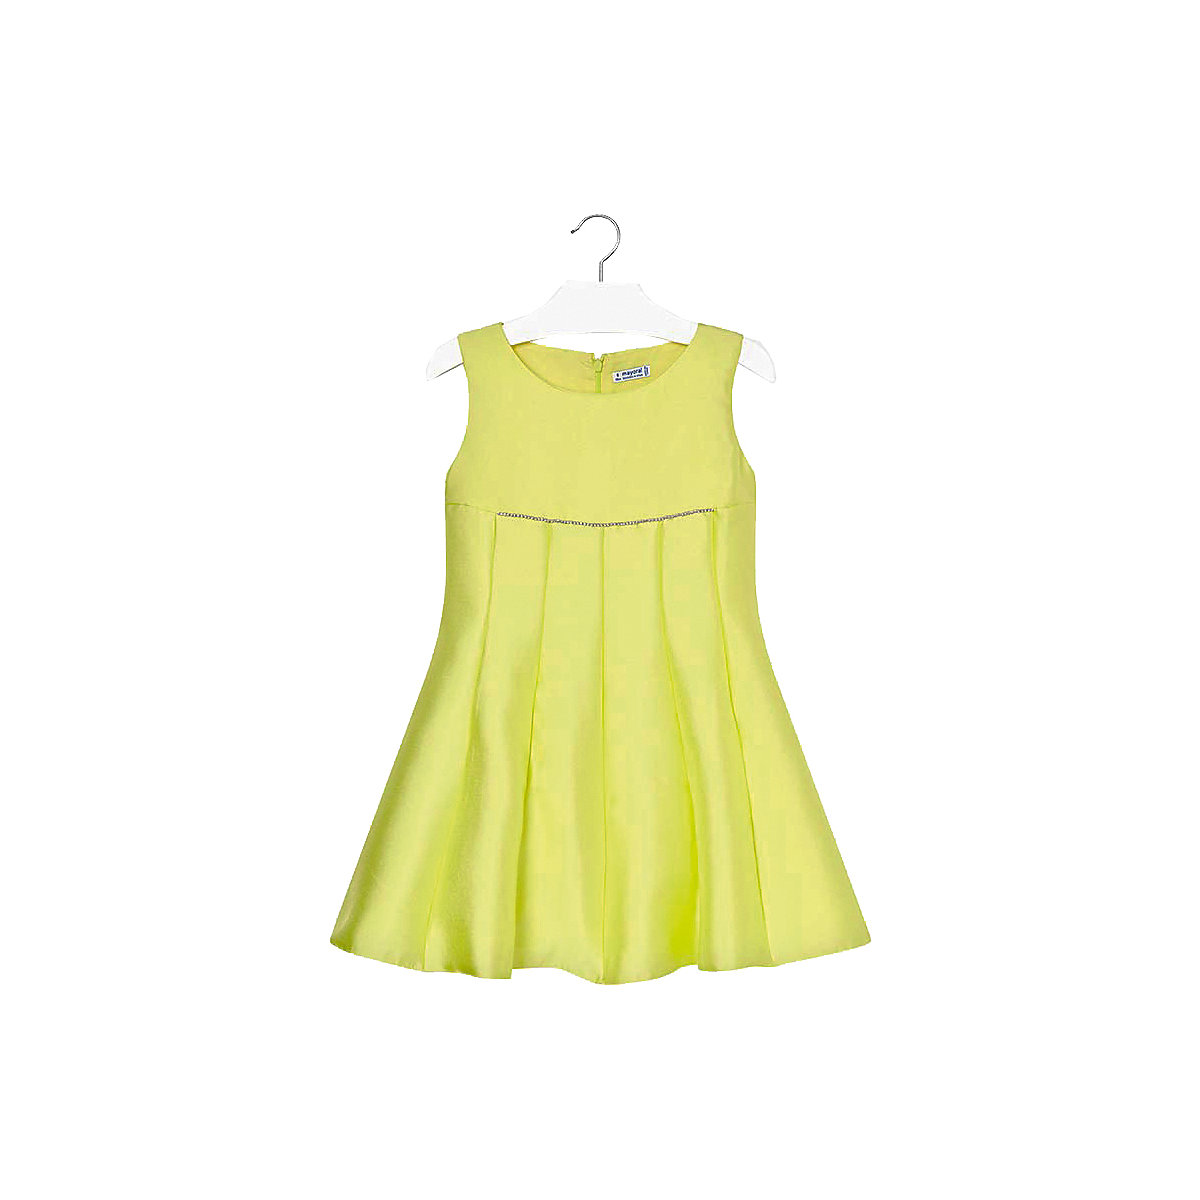 MAYORAL Dresses 10678678 Girl Children Party fitted pleated skirt Yellow Polyester Preppy Style Solid Knee-Length Sleeveless Sleeve